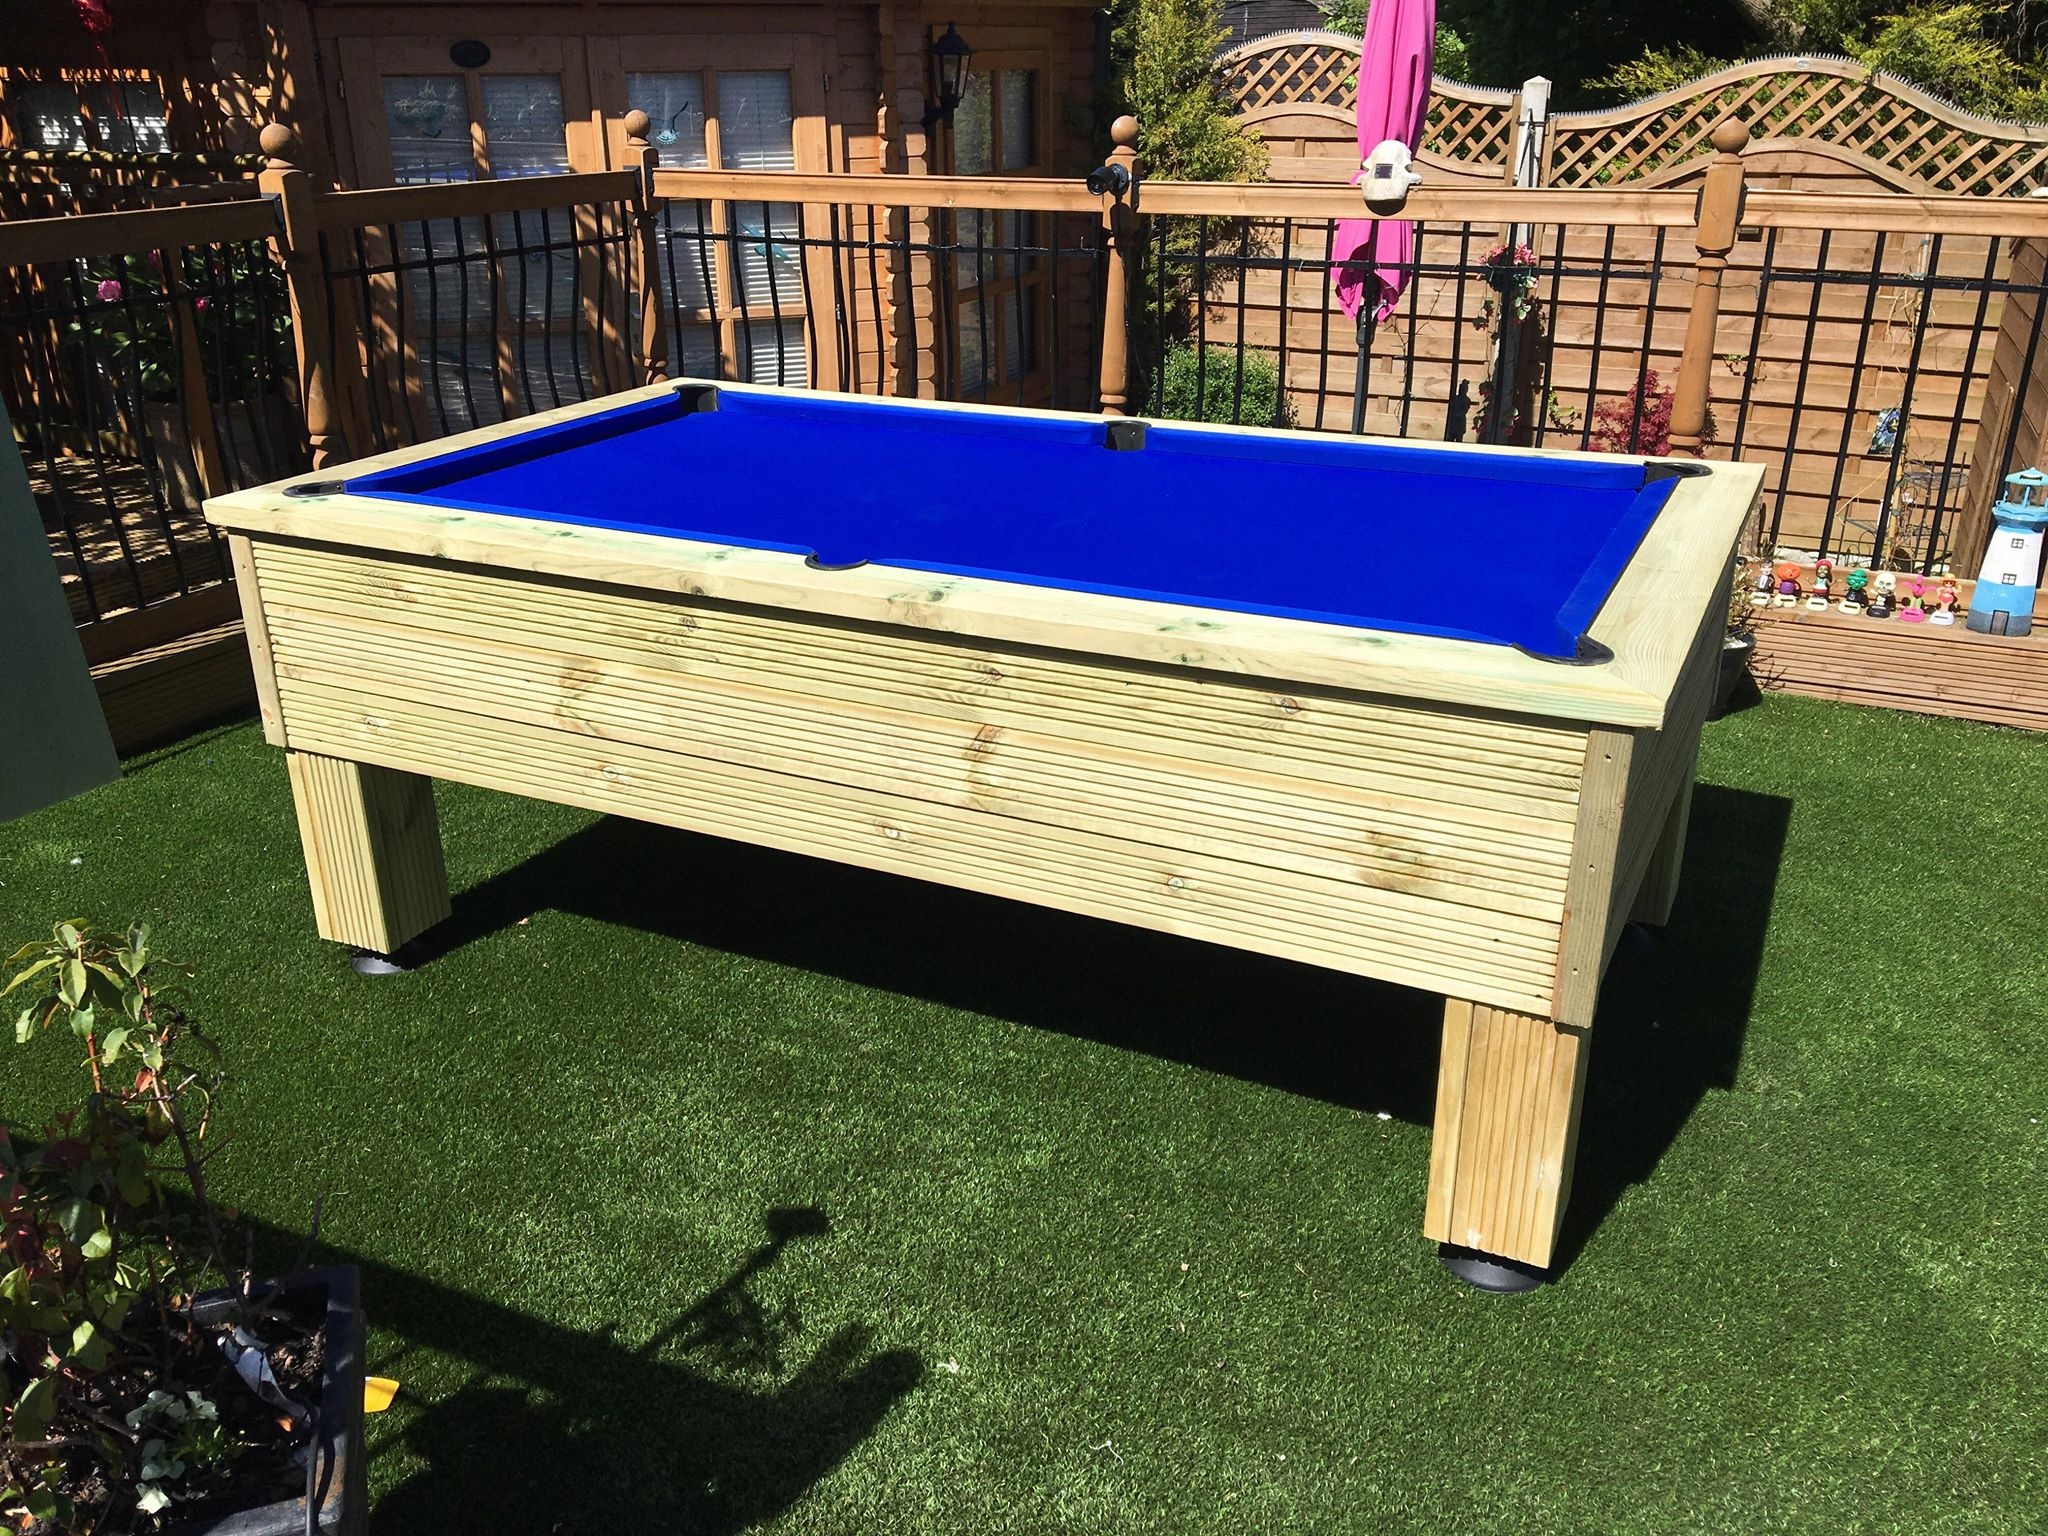 7ft Rustic Outdoor All Weather Pool Table | JohnsonsSports.com